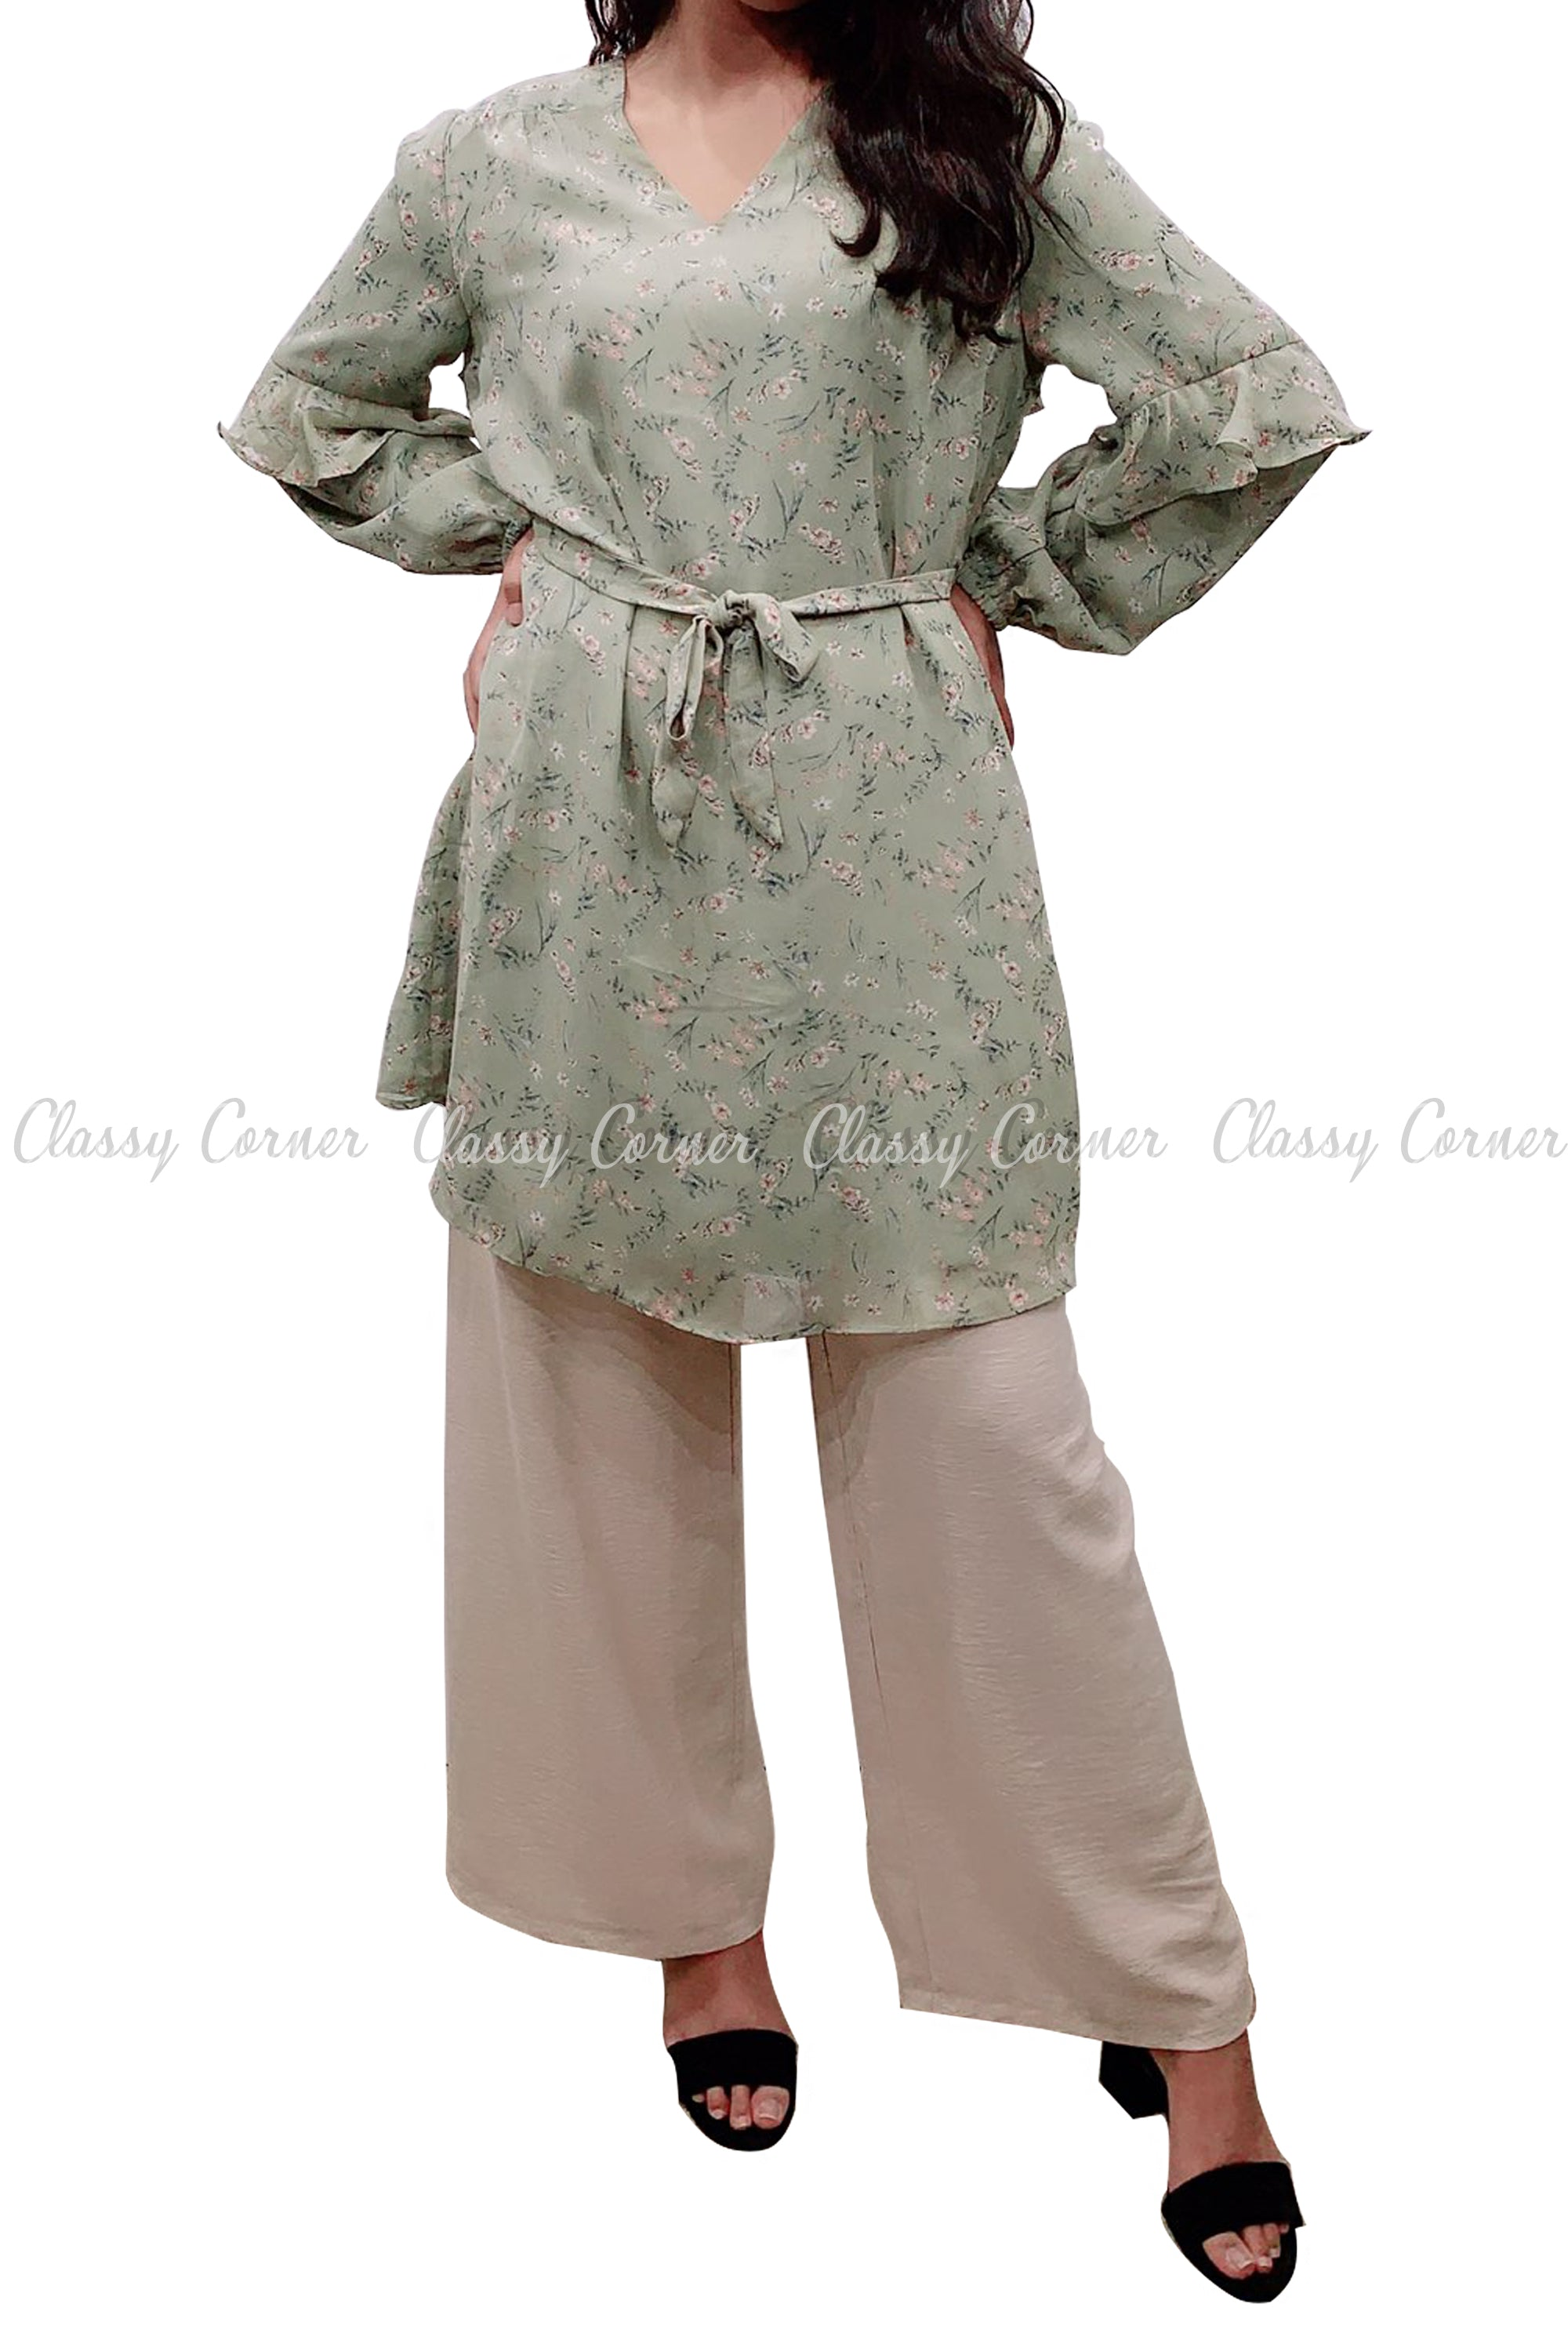 Floral Print Ruffle Sleeves Green Modest Tunic Dress